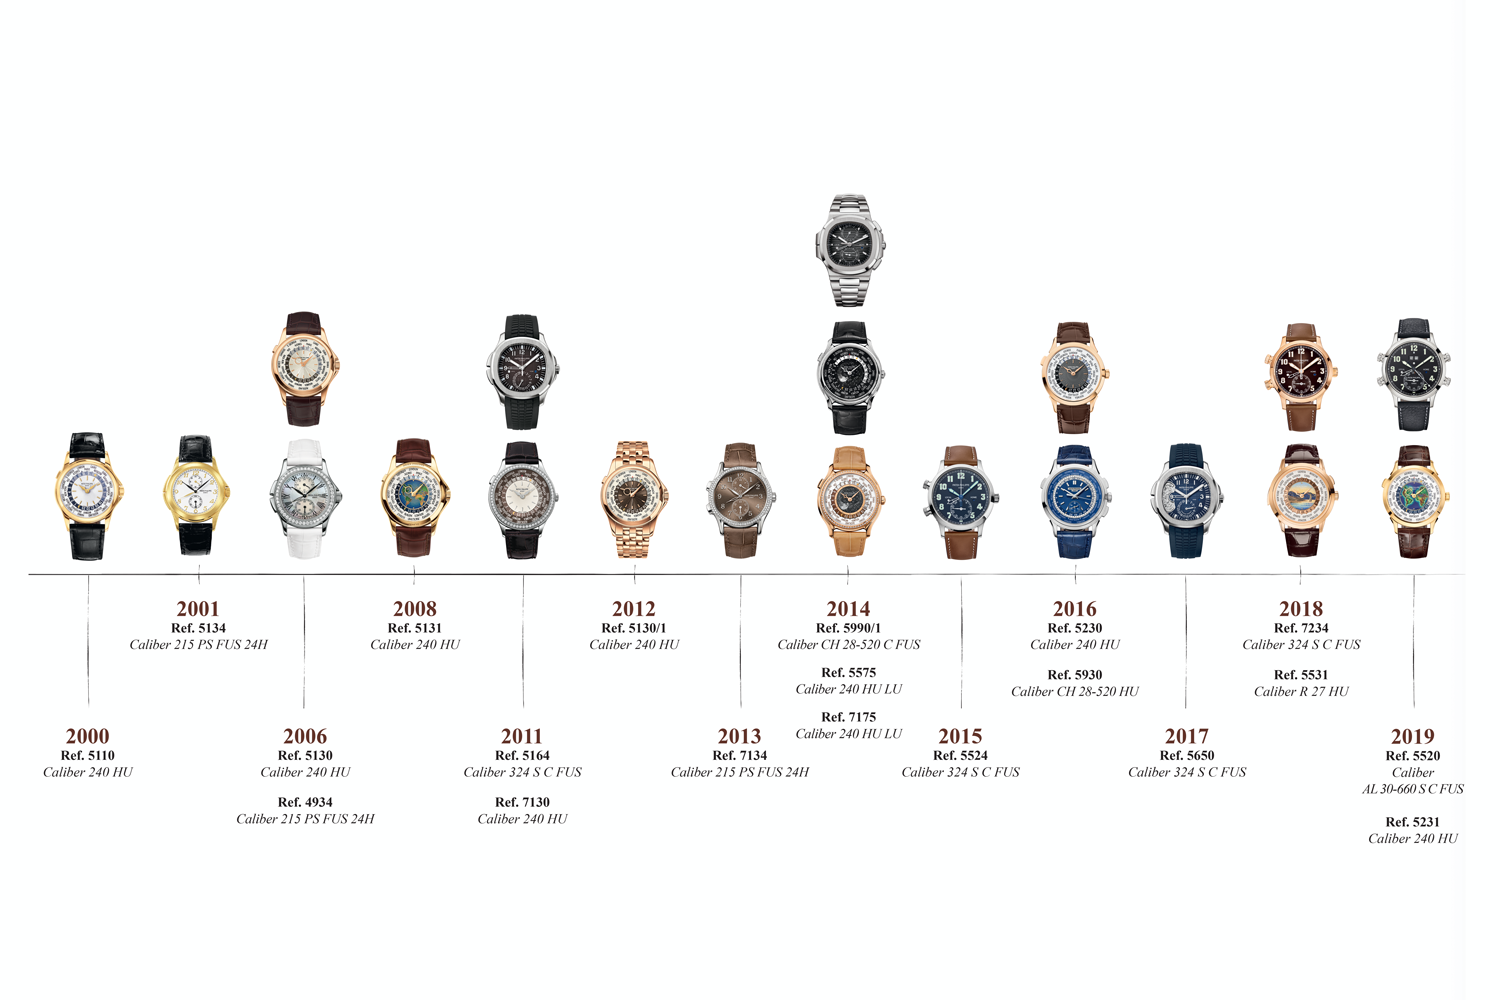 The World Timers of Patek Philippe in the 21st Century